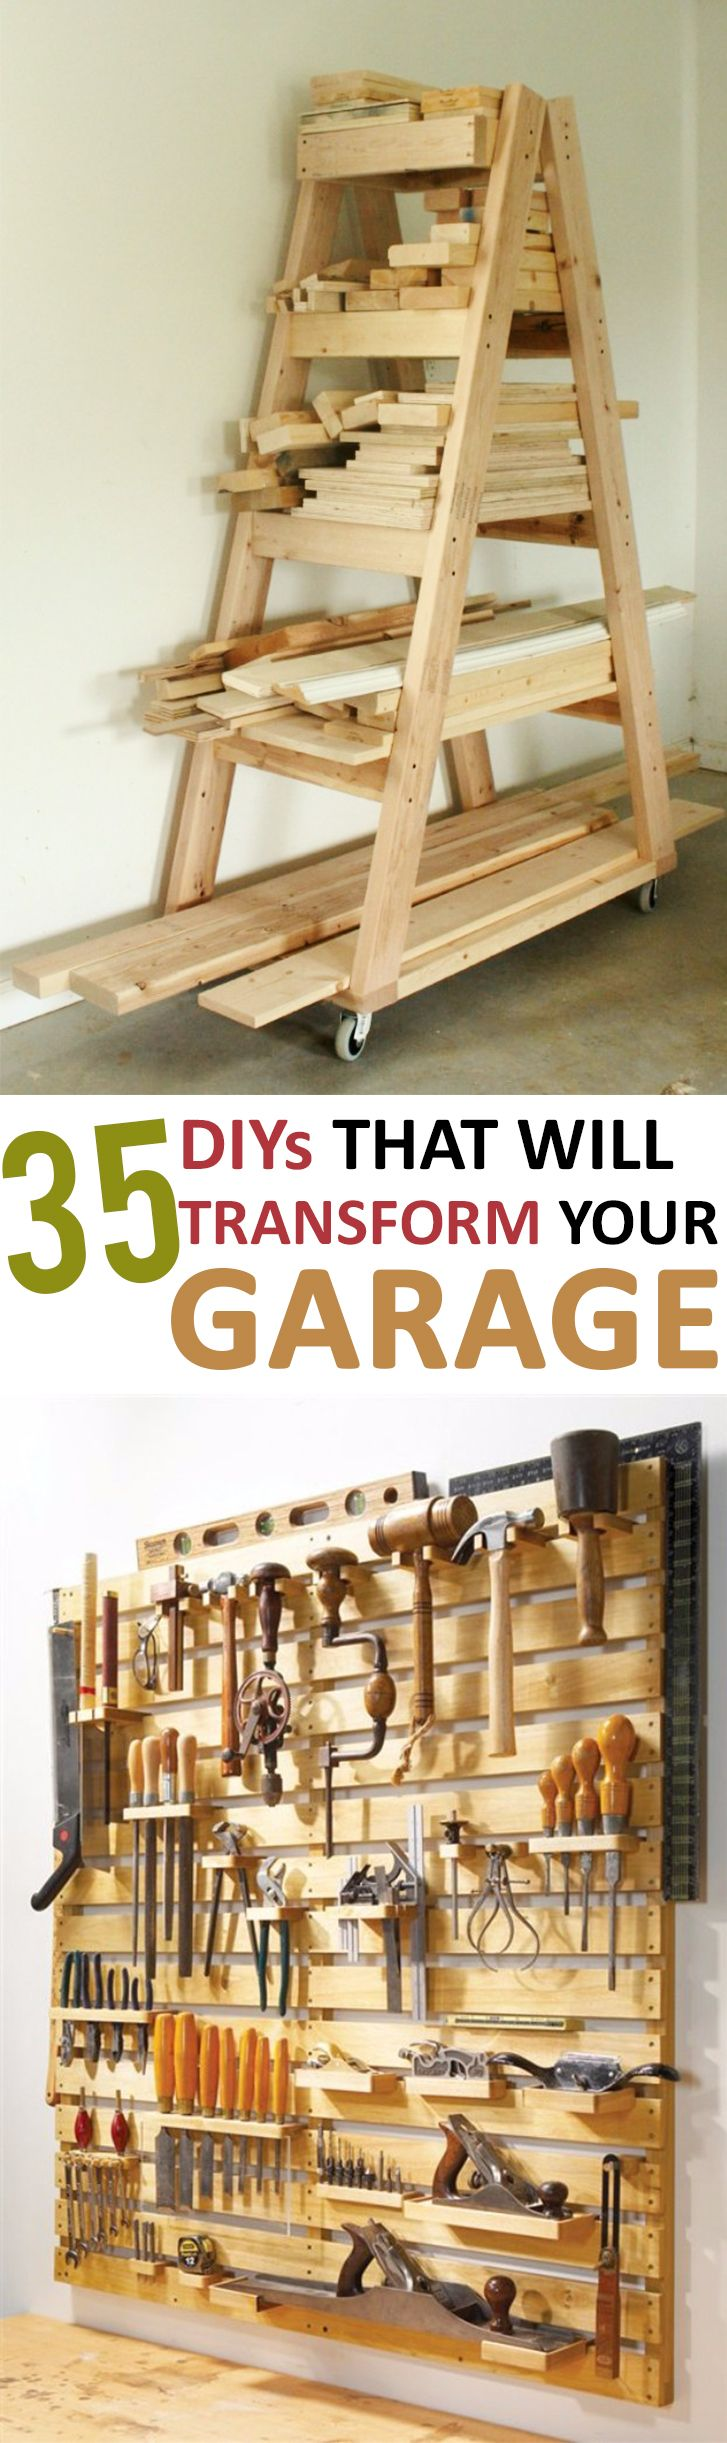 amazing cabinets with organization and com exterior amusing garage diy picturesque storage at shelves ilecip org